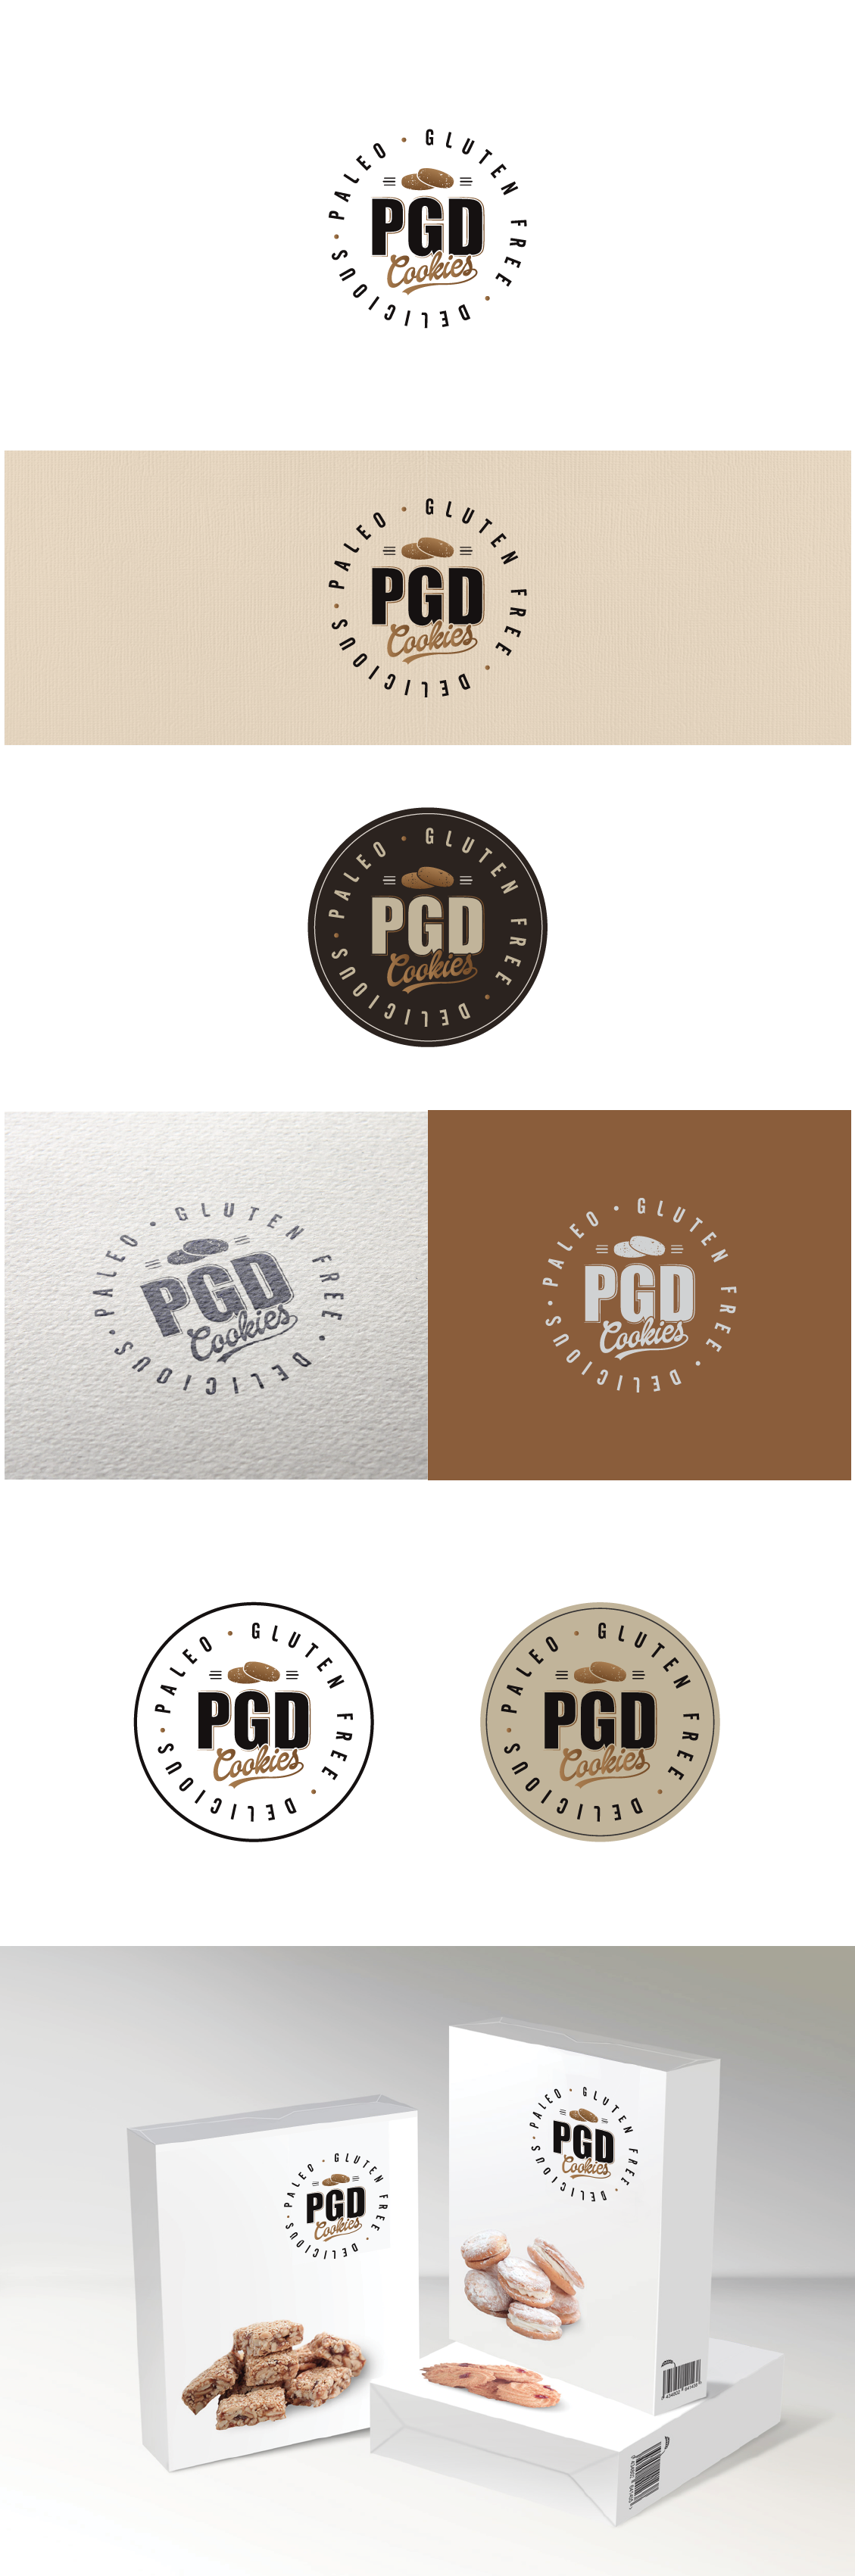 Create a logo for PGD Cookies